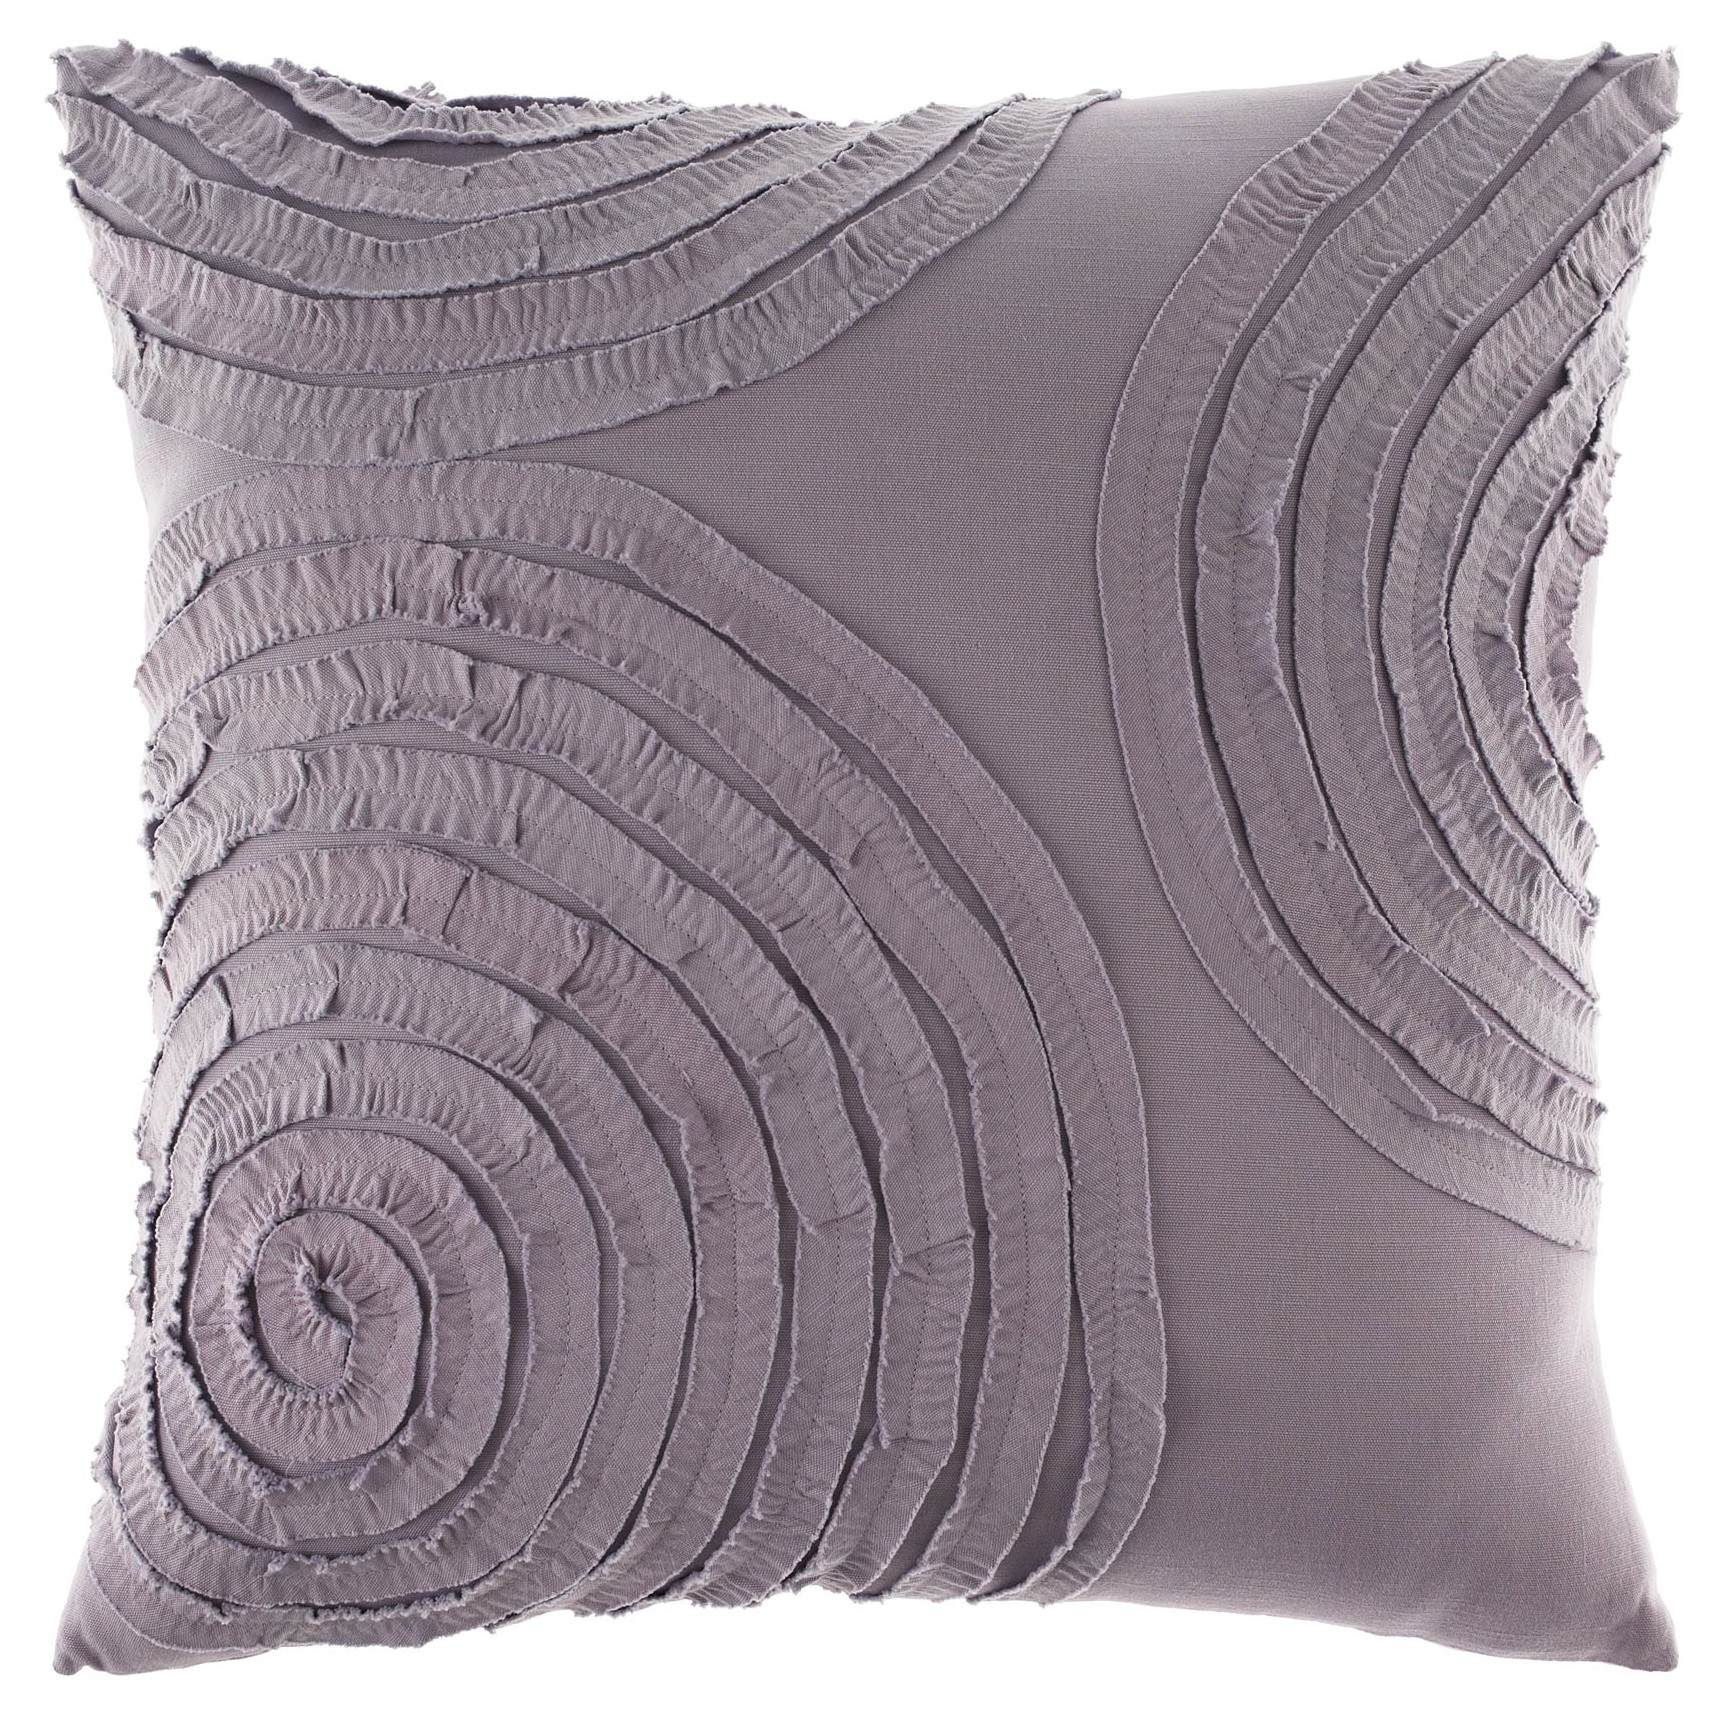 decorative-pillows-8